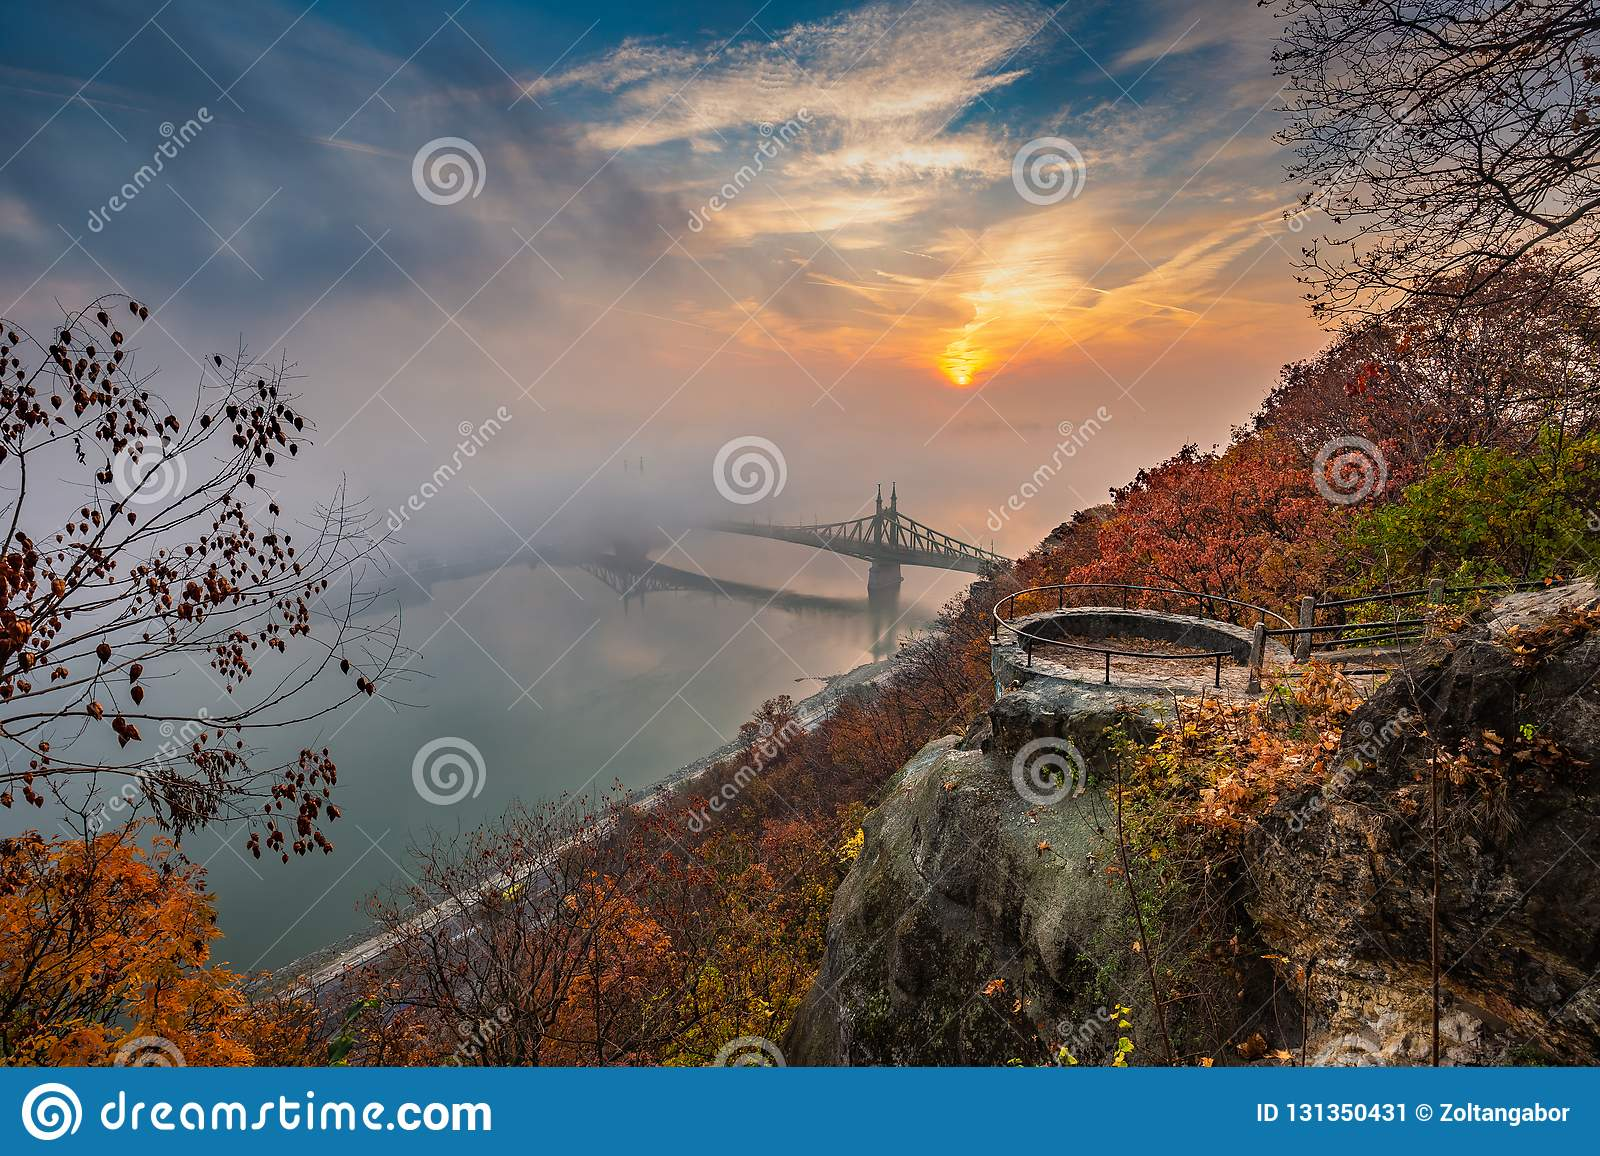 Budapest, Hungary - Lookout on Gellert Hill with Liberty Bridge Szabadsag Hid, fog over River Danube, colorful sky and clouds